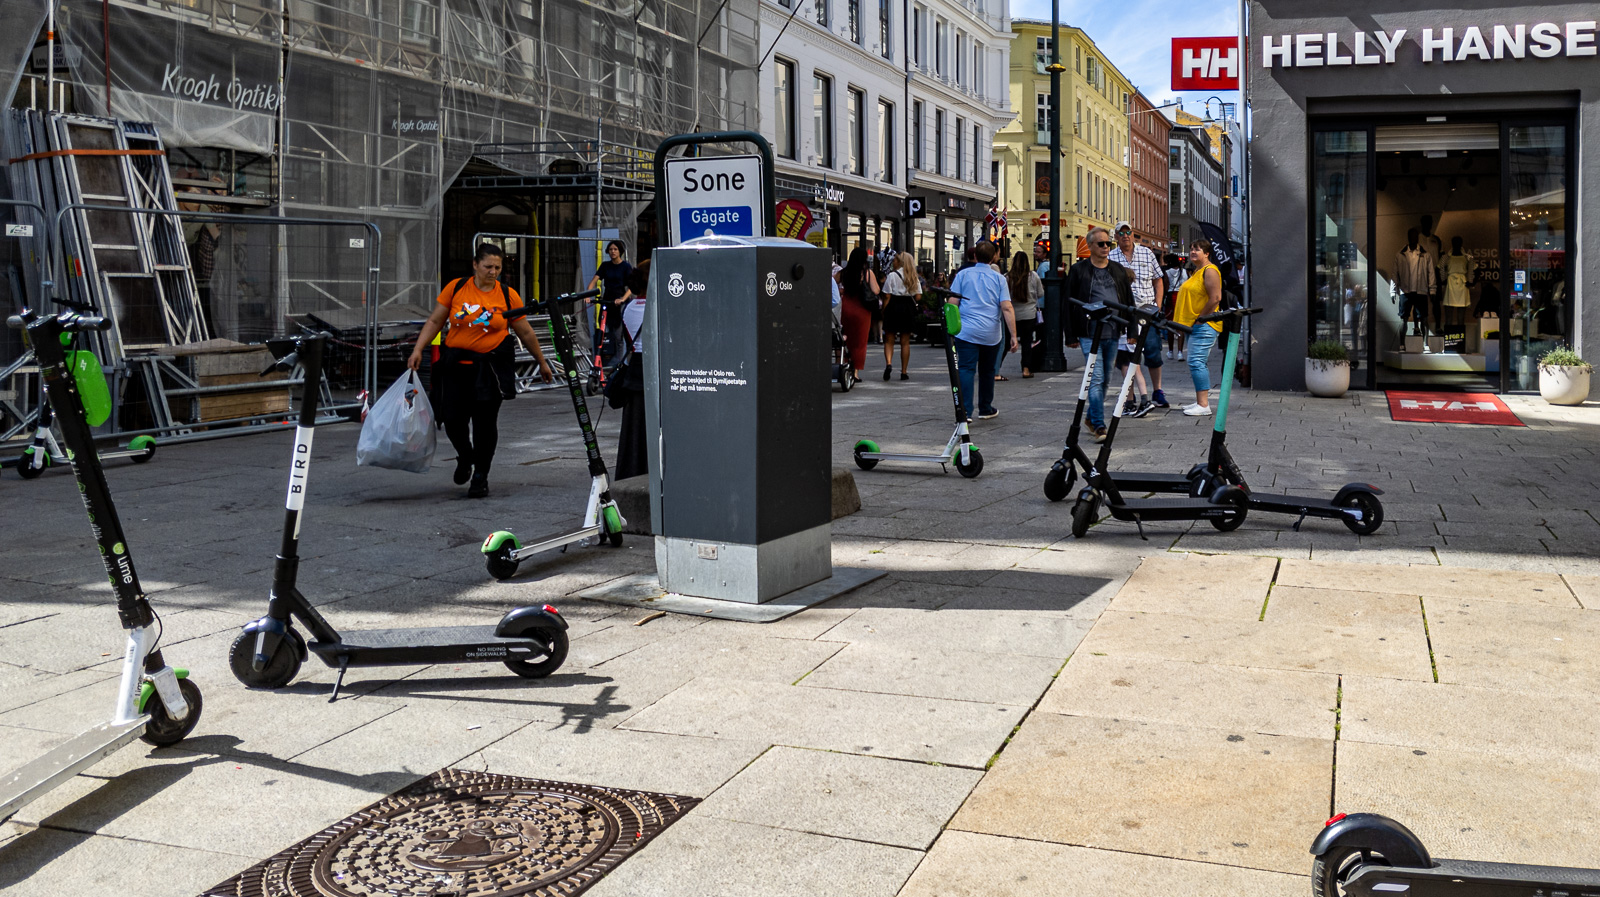 E-scooters parked at Karl Johans Gate, Oslo